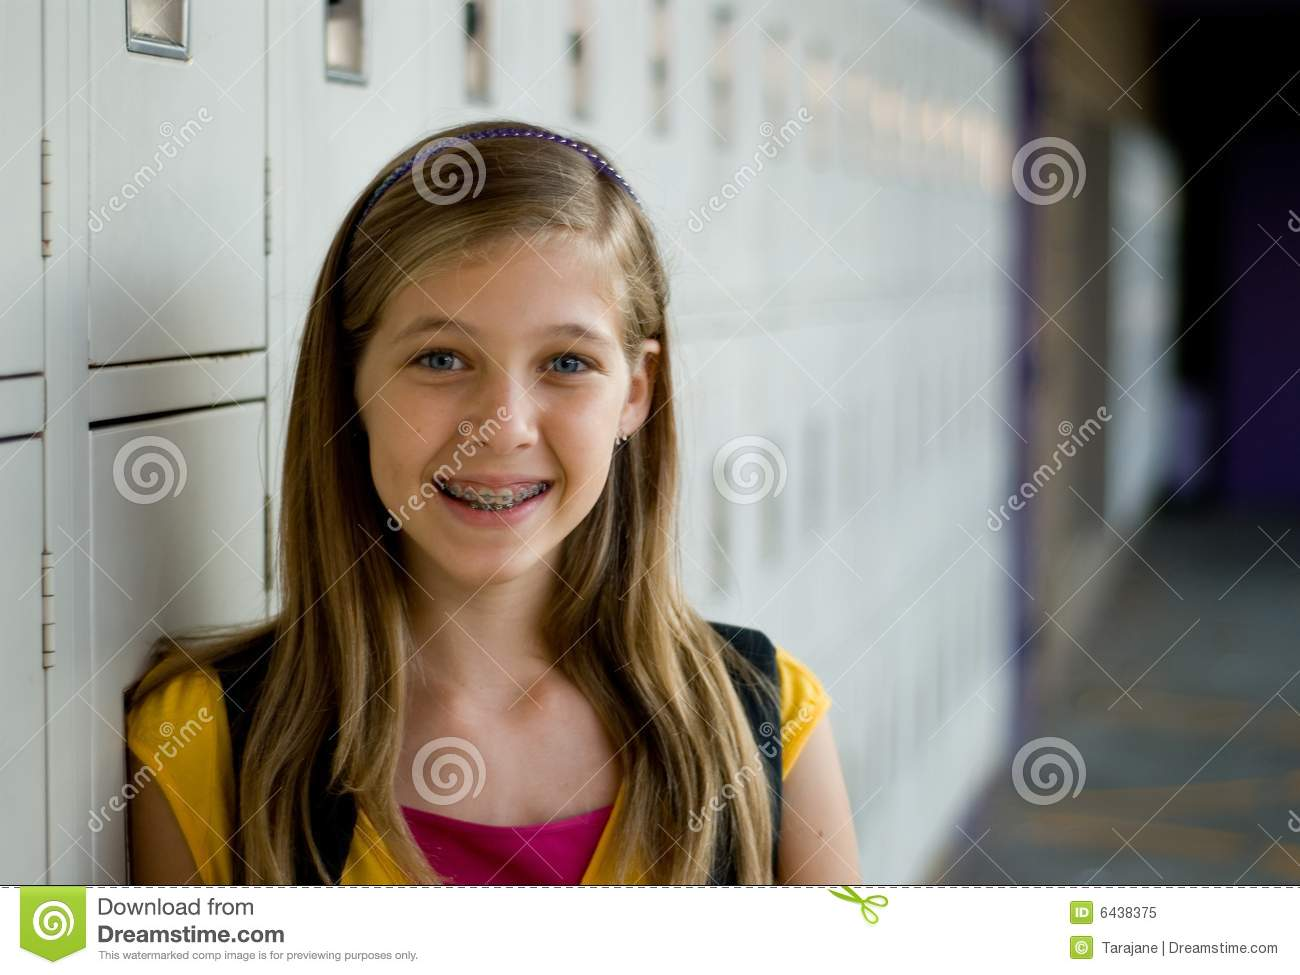 Cute Student Royalty Free Stock Photo - Image: 6438375 Happy High School Student Clipart